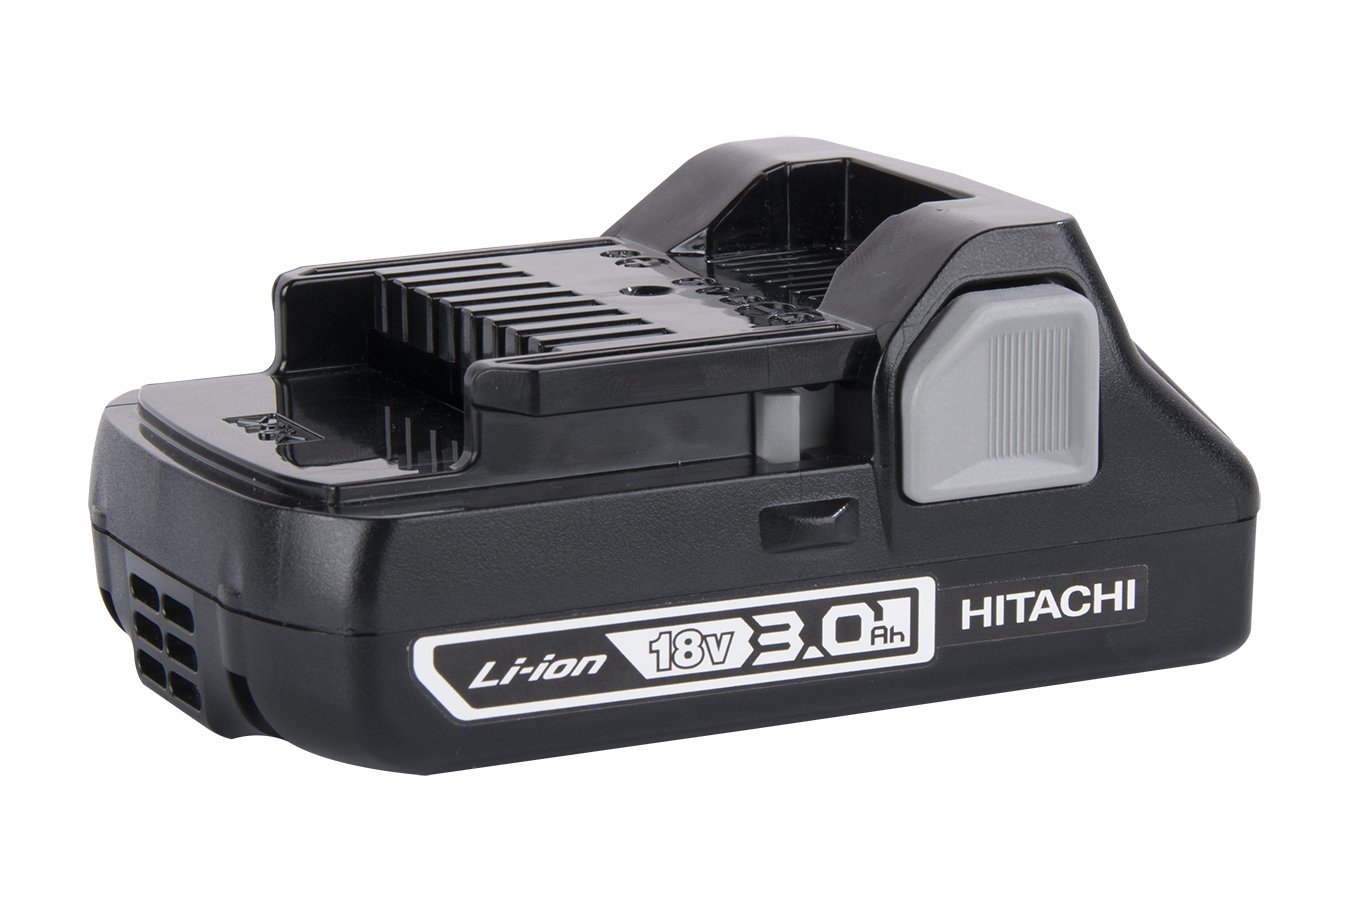 Hitachi 339782 Compact 18V 3.0 Amp Hour Lithium-Ion Slide Style Battery